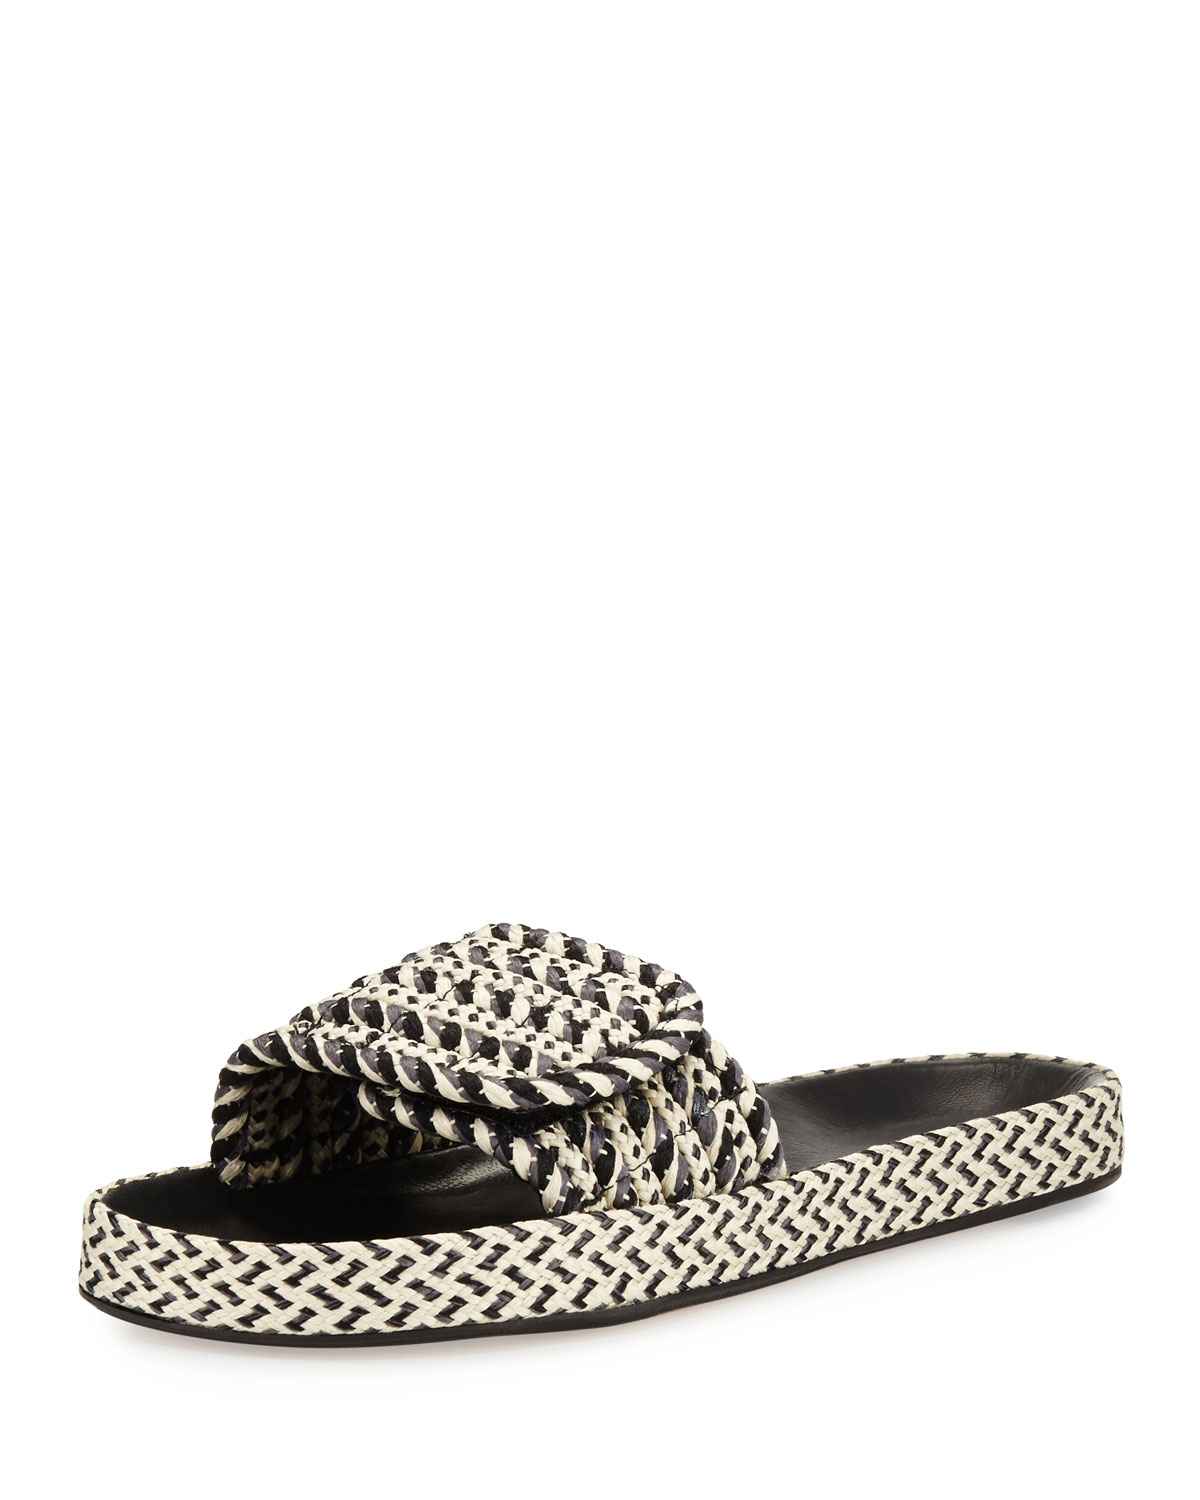 store cheap online Isabel Marant Rope Slide Sandals free shipping low price bVykClY1